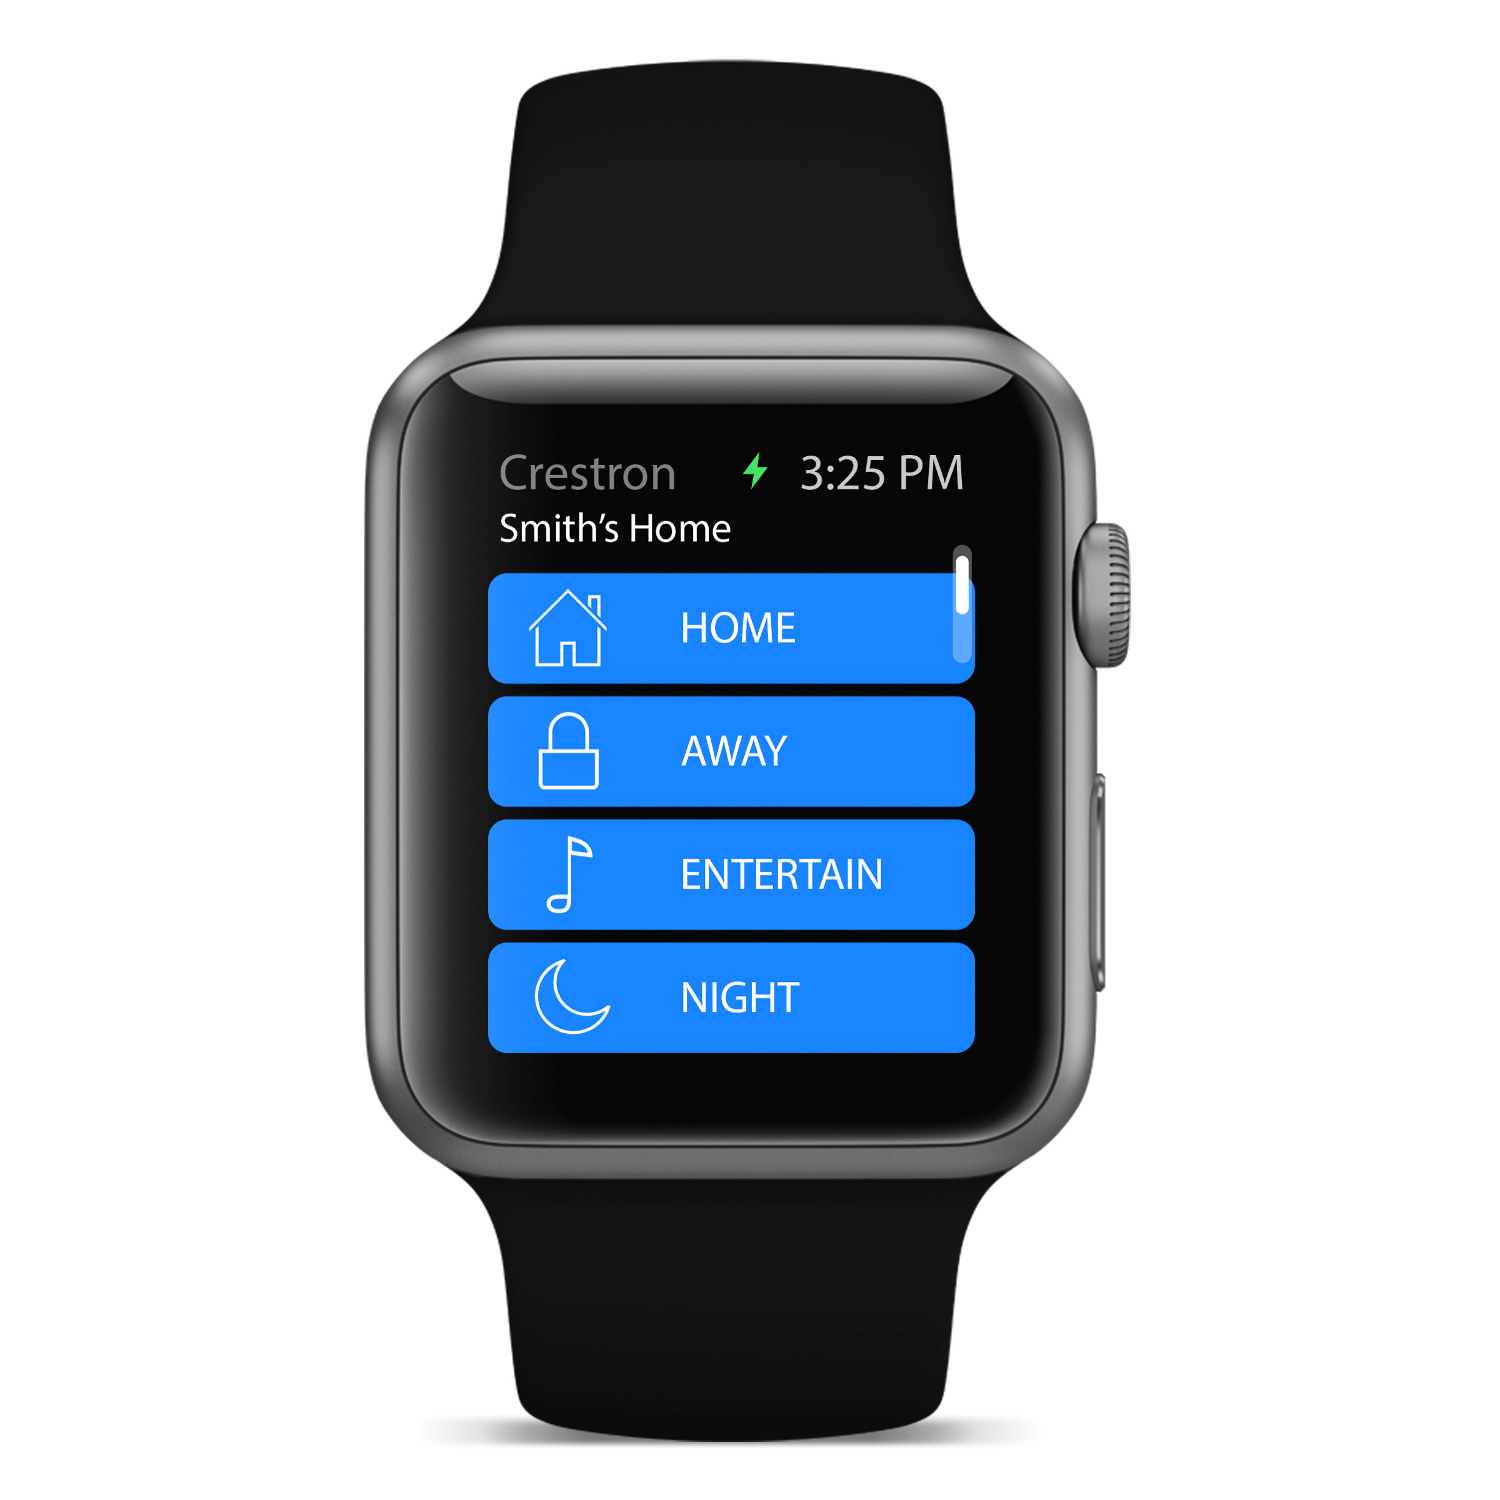 Crestron Apple Watch App